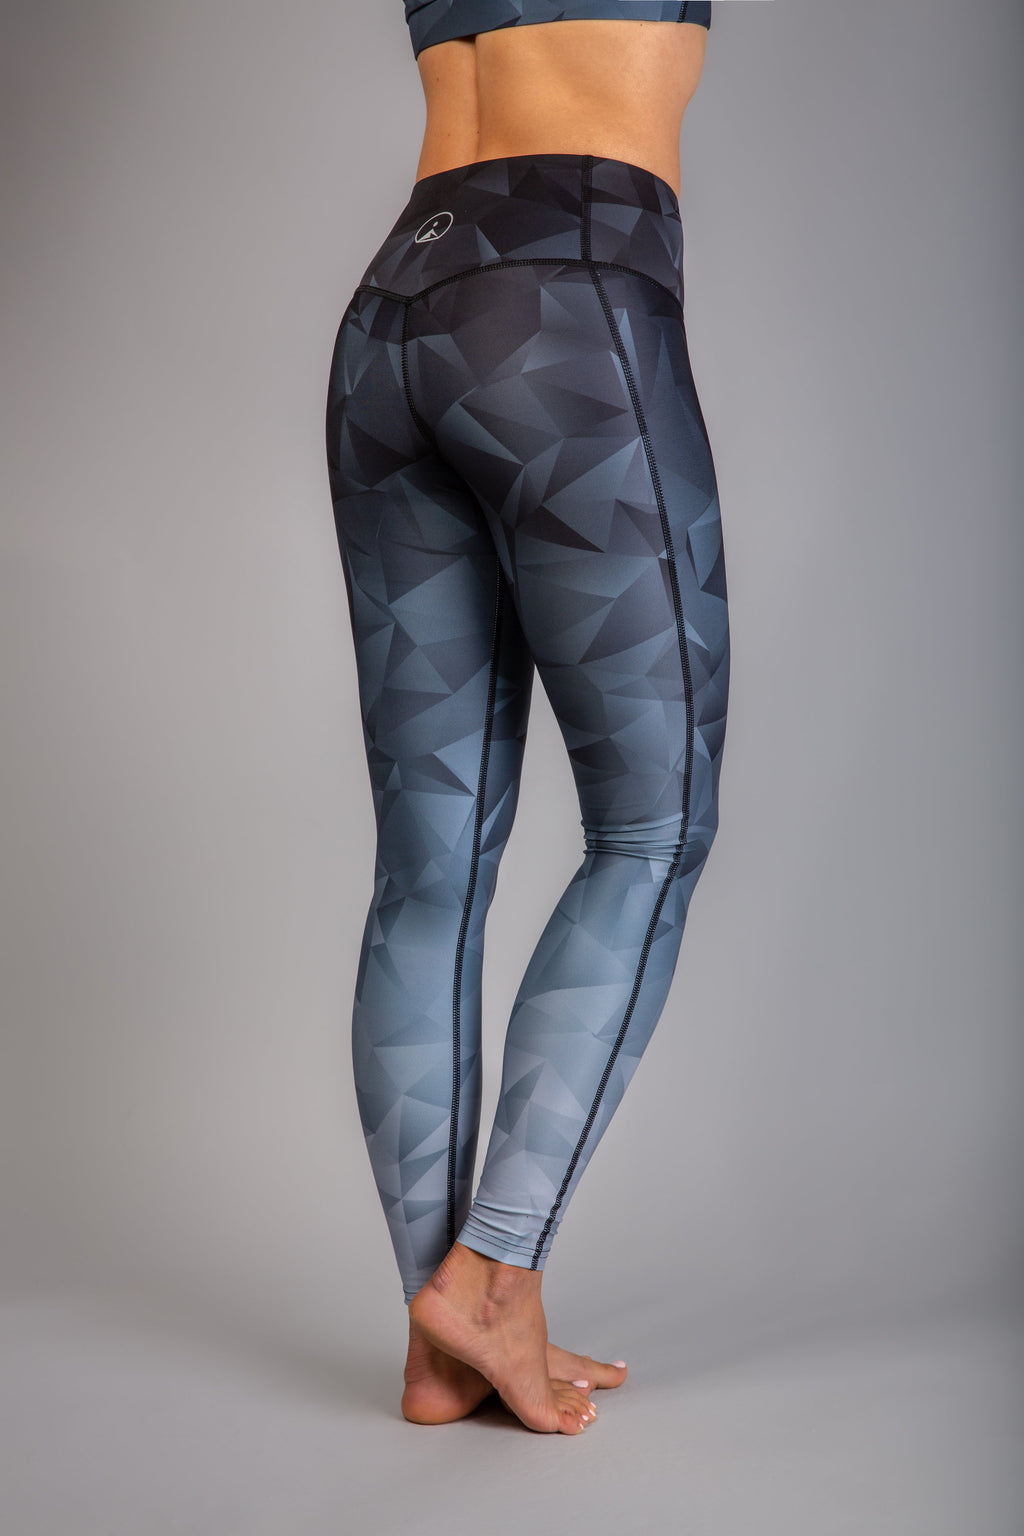 Women's outdoor hiking leggings Alpine Princess - for hiking, climbing, trekking, mountains and running